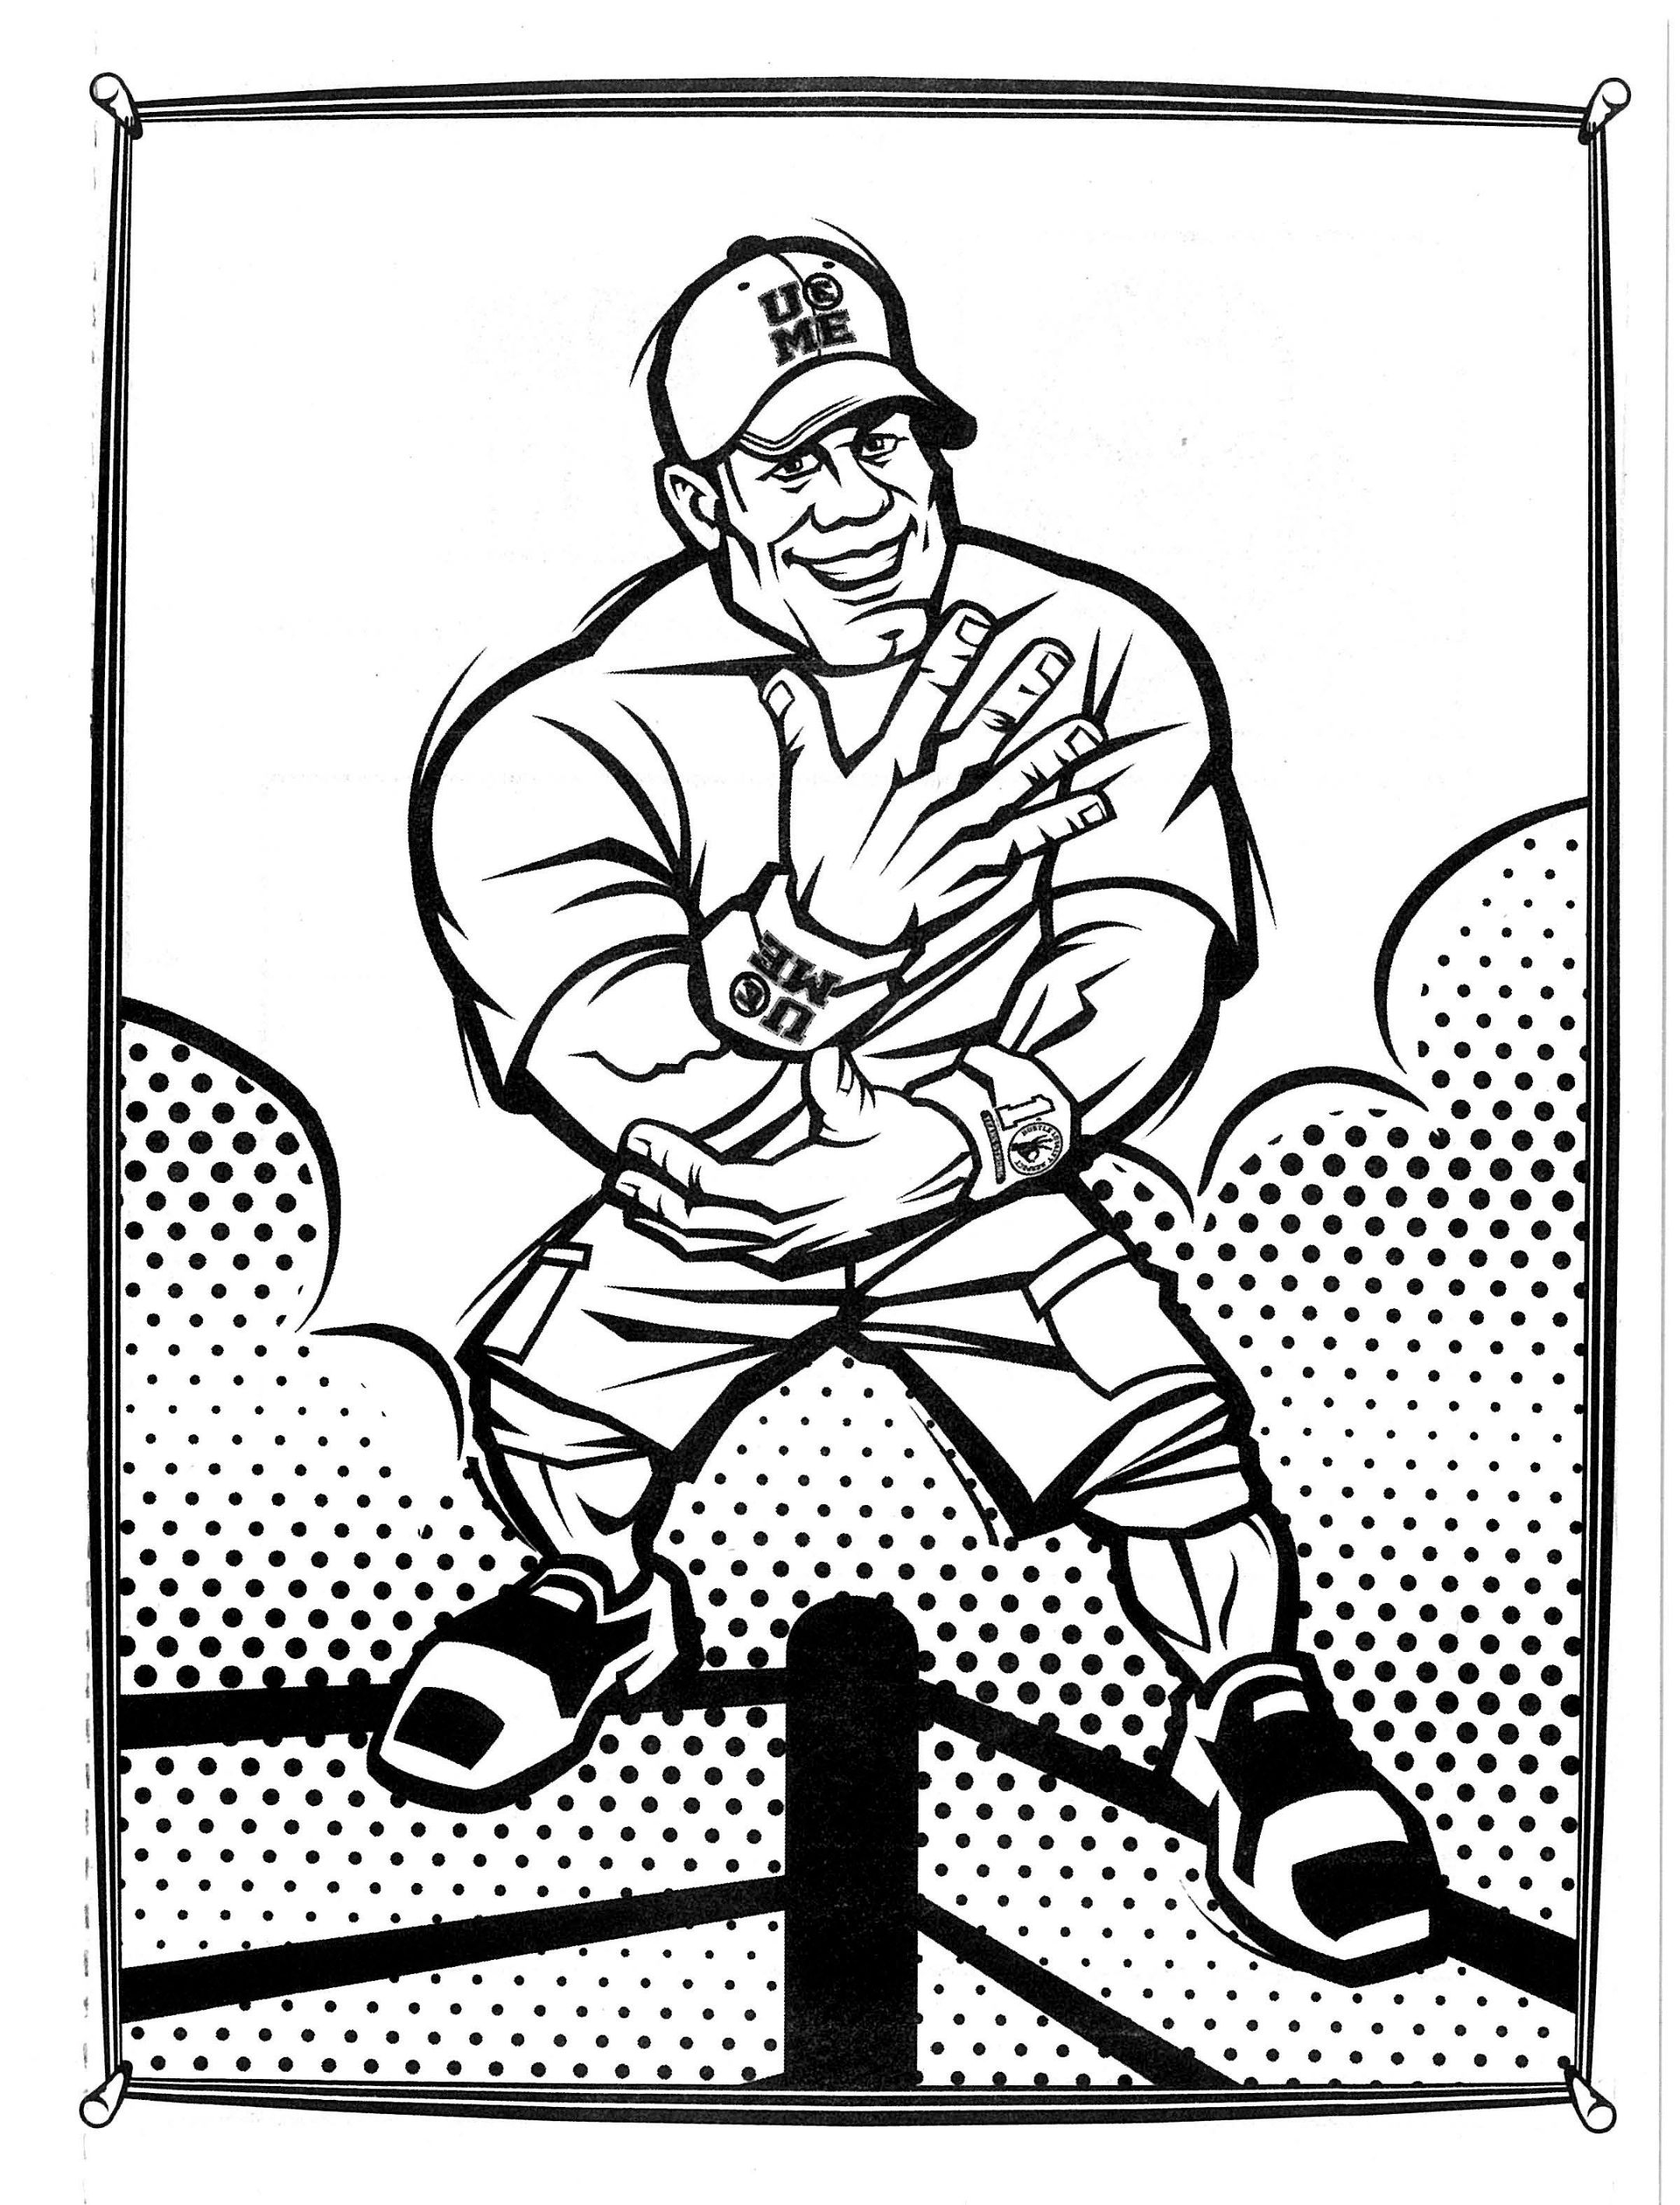 Wwe super coloring activity book john cena for Wwe raw coloring pages